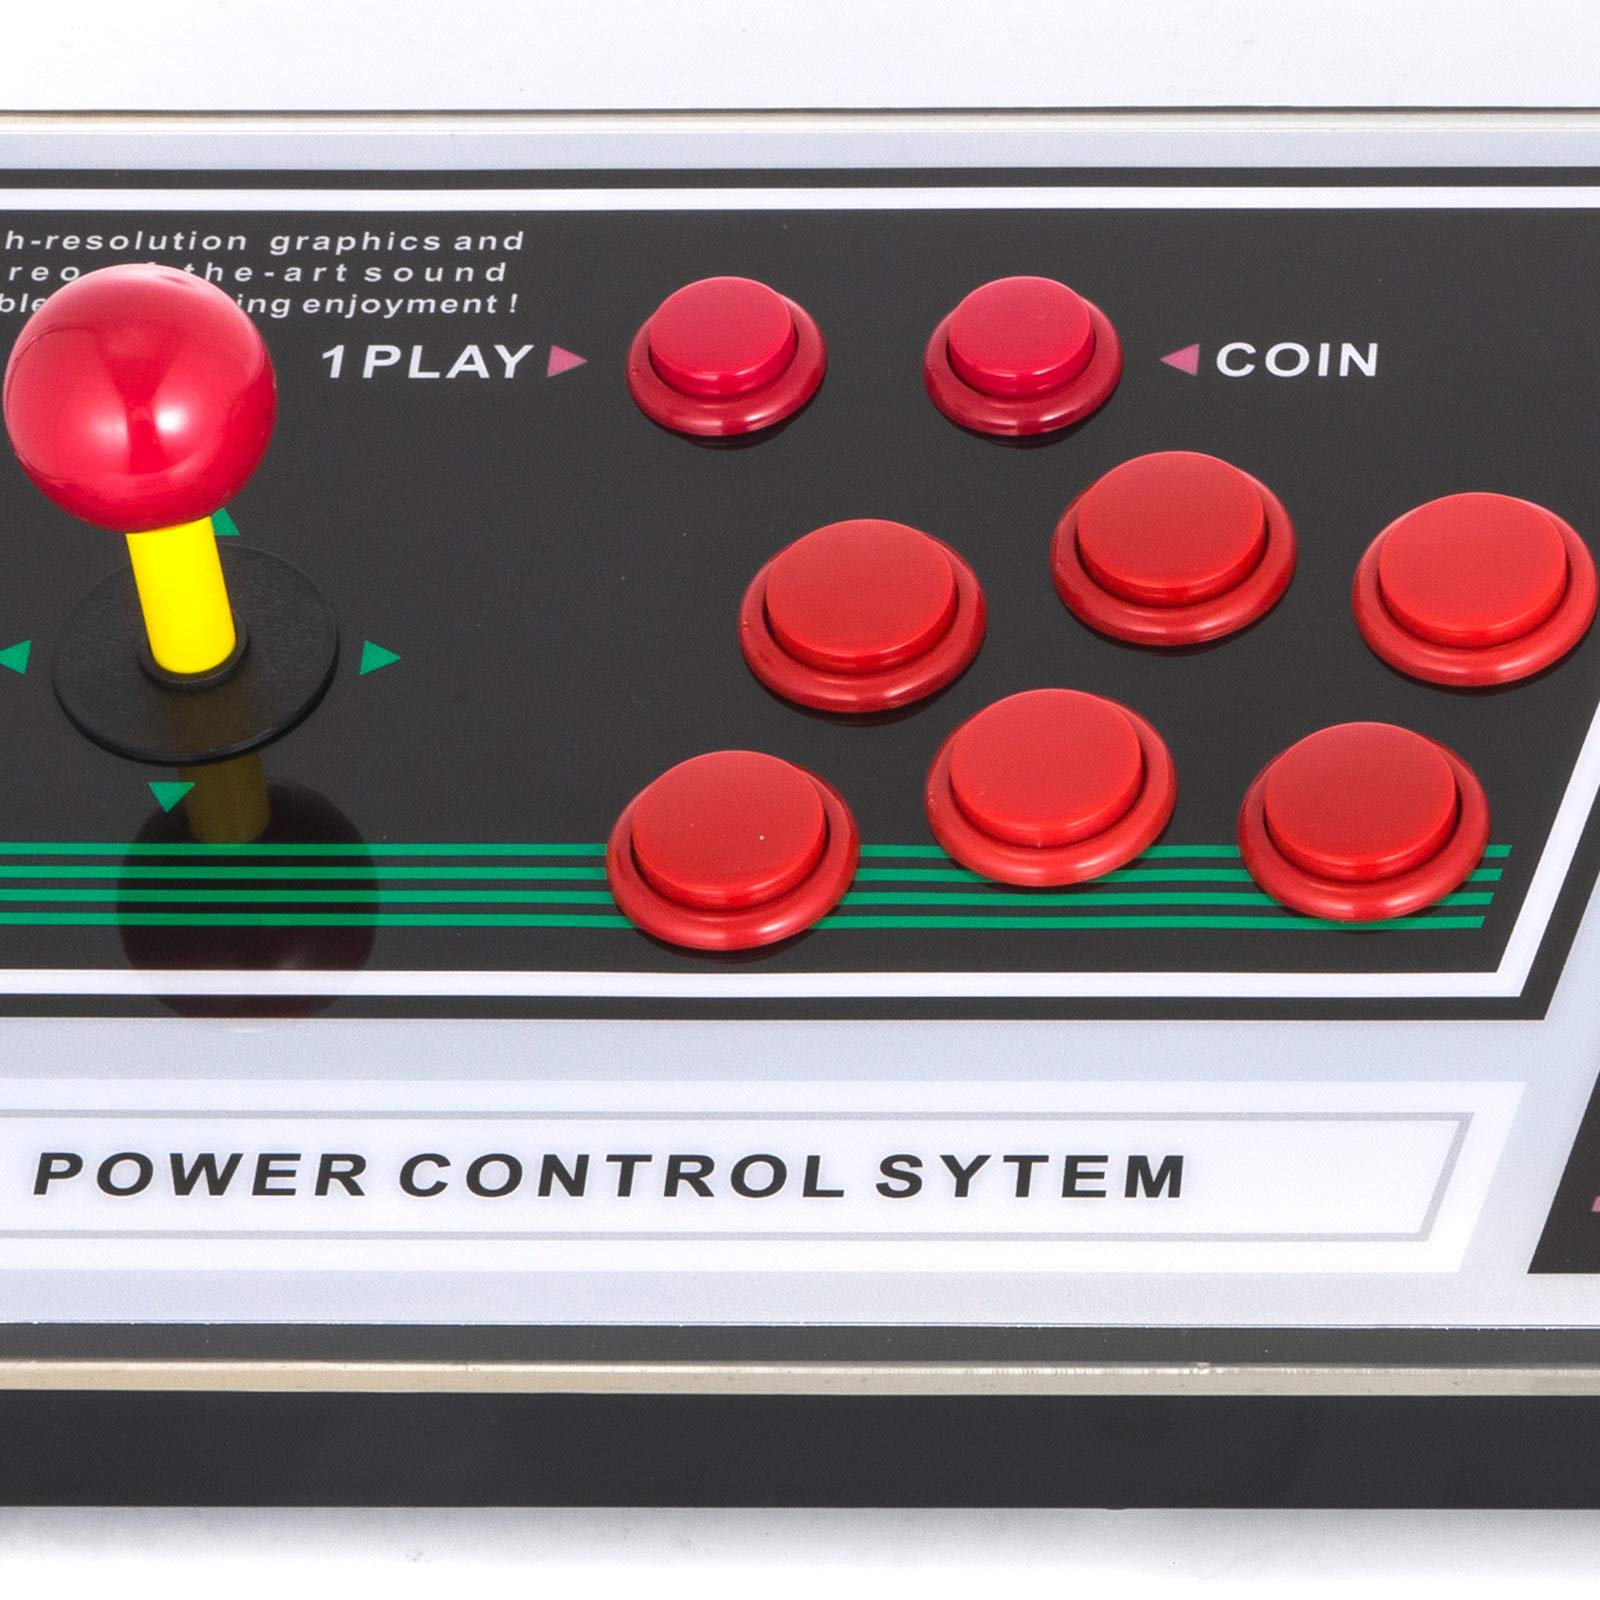 Happybuy Arcade Game Console 1280P Games 1500 in 1 Pandora's Box 2 Players Arcade Machine with Arcade Joystick Support Expand Games for PC / Laptop / TV / PS4 by Happybuy (Image #7)